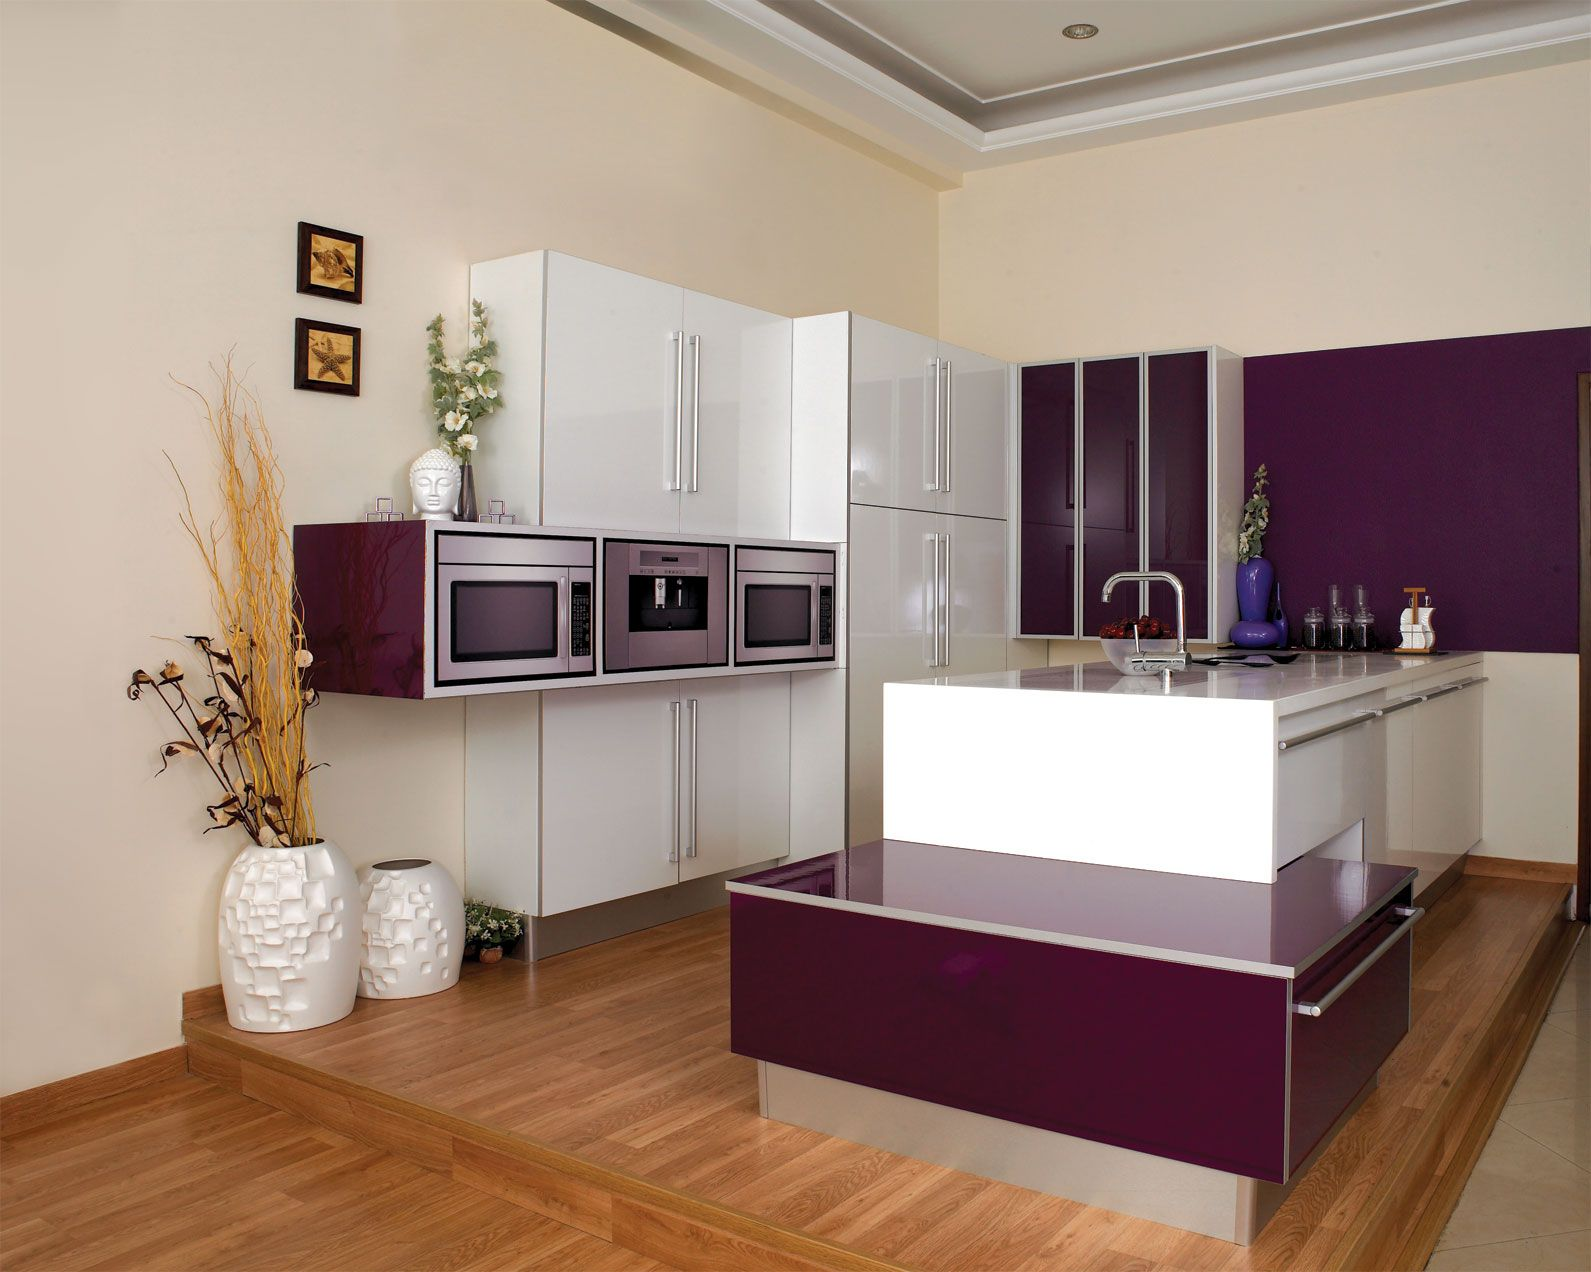 Kitchen Design Brands New Buy Kitchen Accessories From Top Brands In Ludhiana At Affordable Design Decoration